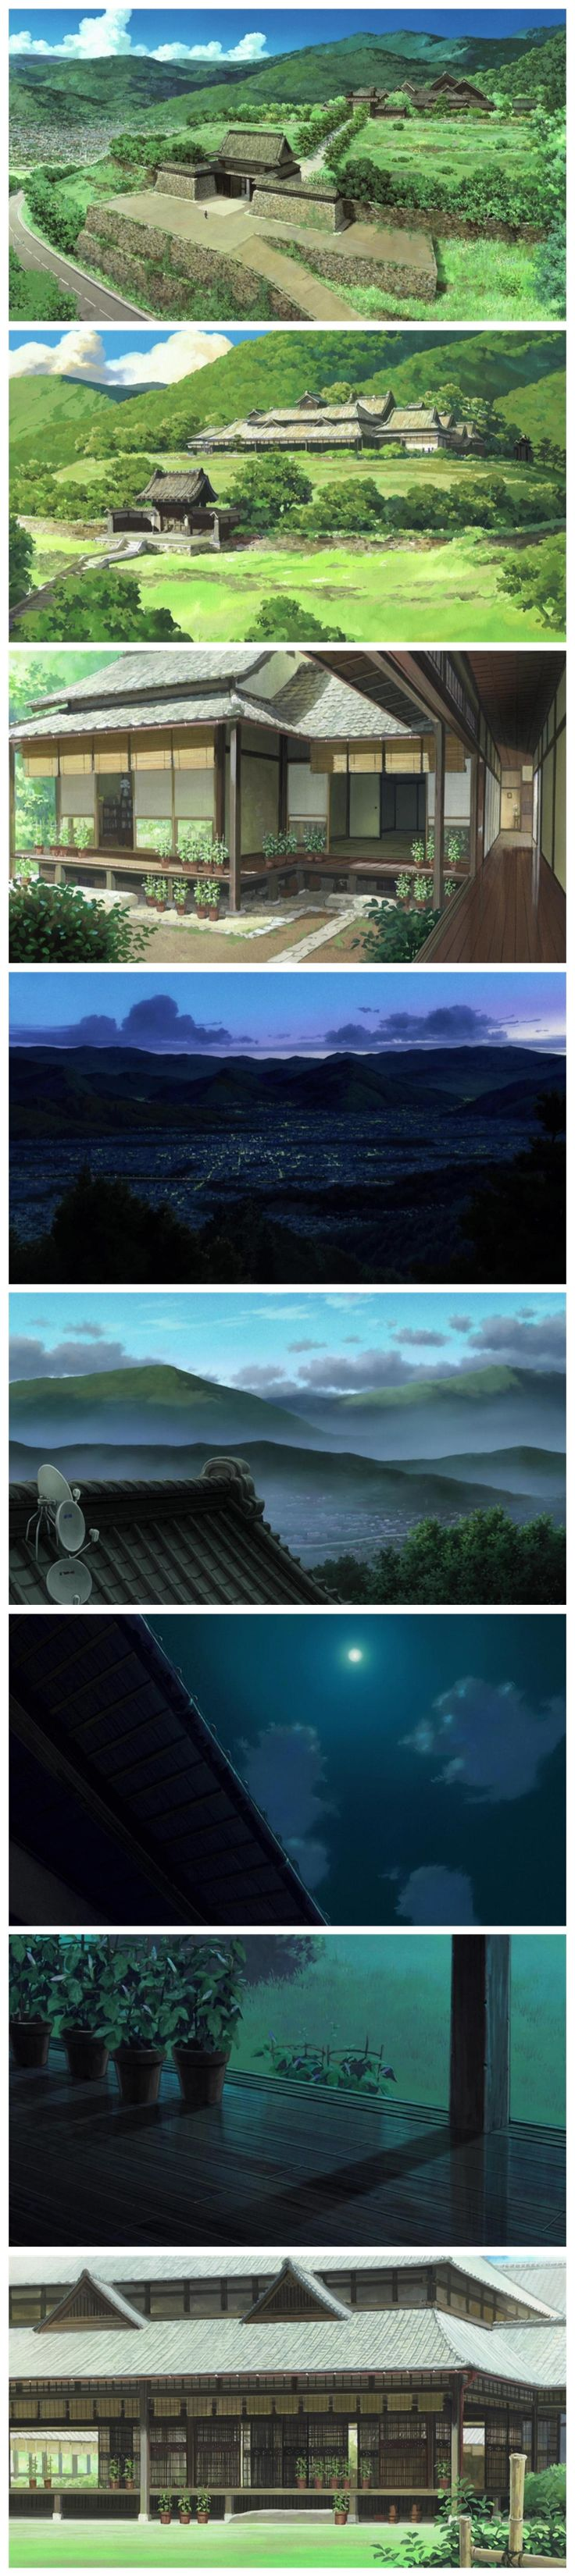 AnimeBackgrounds: Summer Wars (2009) Directed by Mamoru Hosoda and animated by Madhouse.